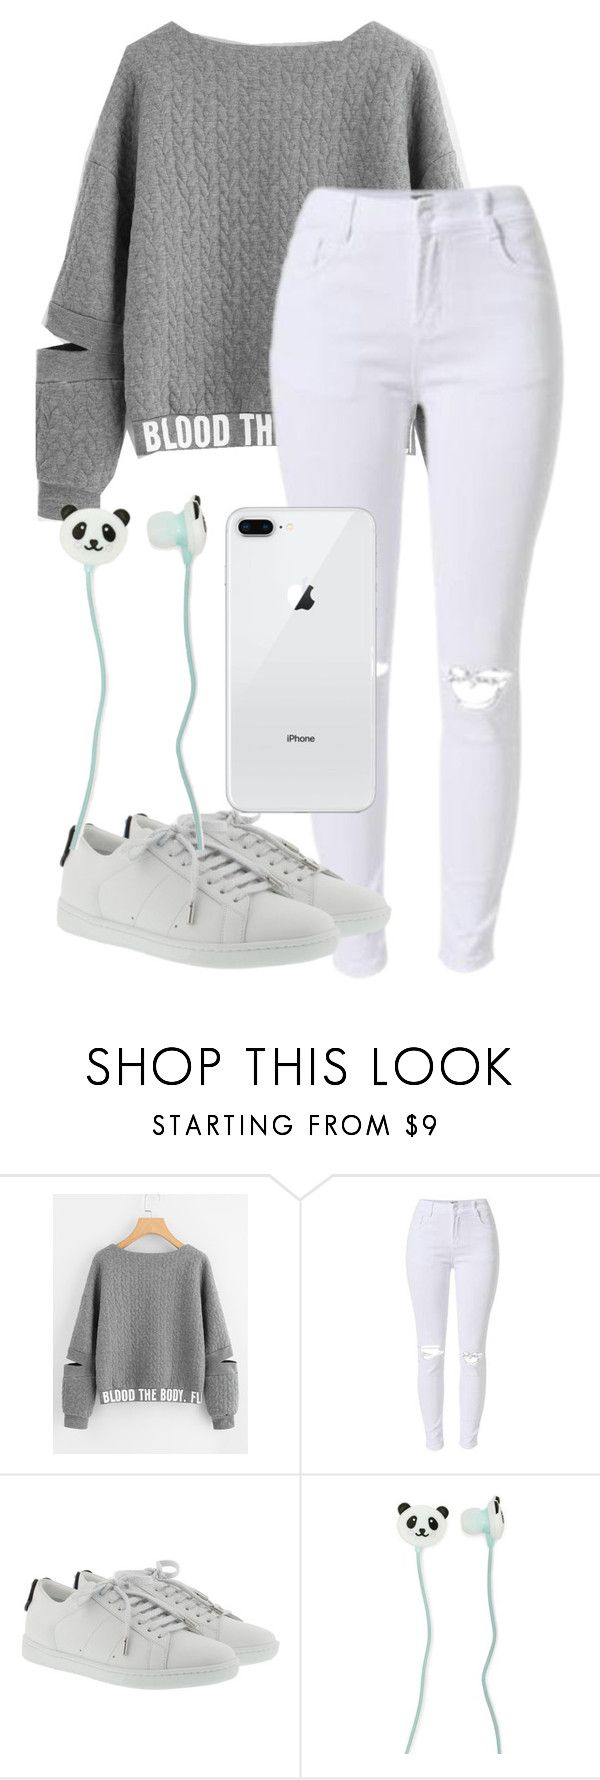 """Look Who I Found"" by maniyah-shay on Polyvore featuring Yves Saint Laurent and Forever 21"